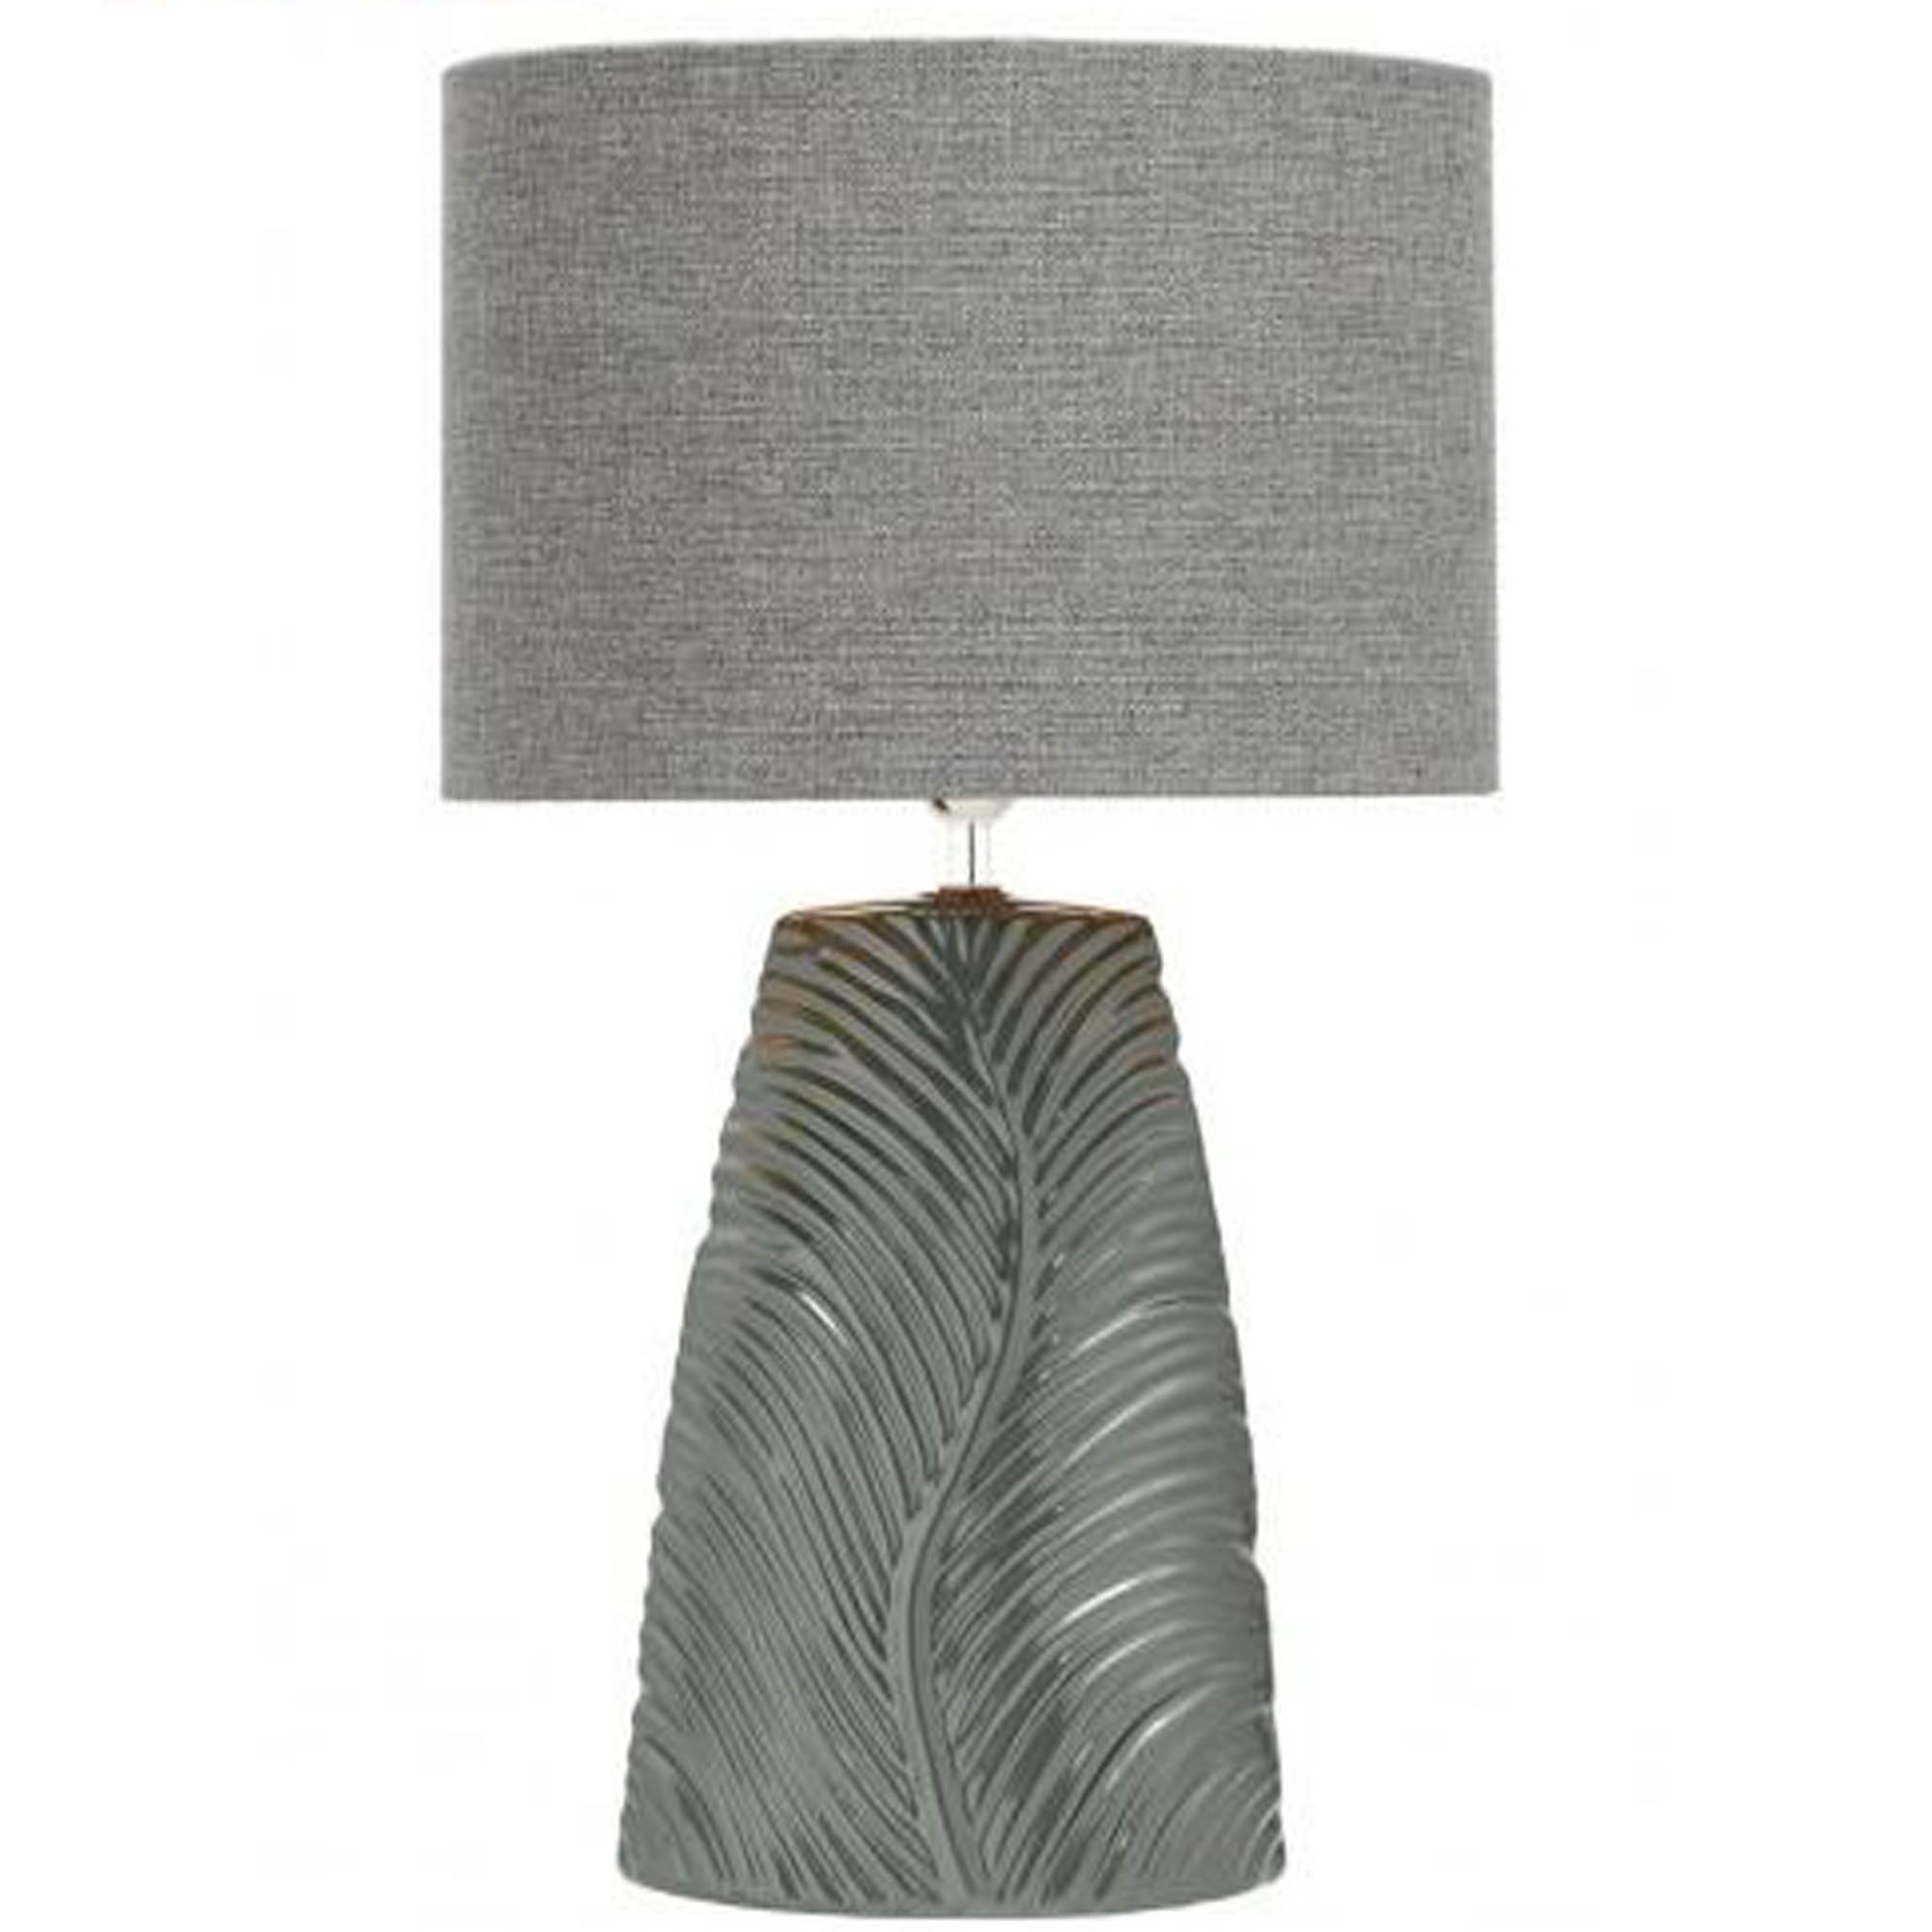 Grey ribbed leaf table lamp lamp homesdirect365 grey ribbed leaf table lamp aloadofball Choice Image